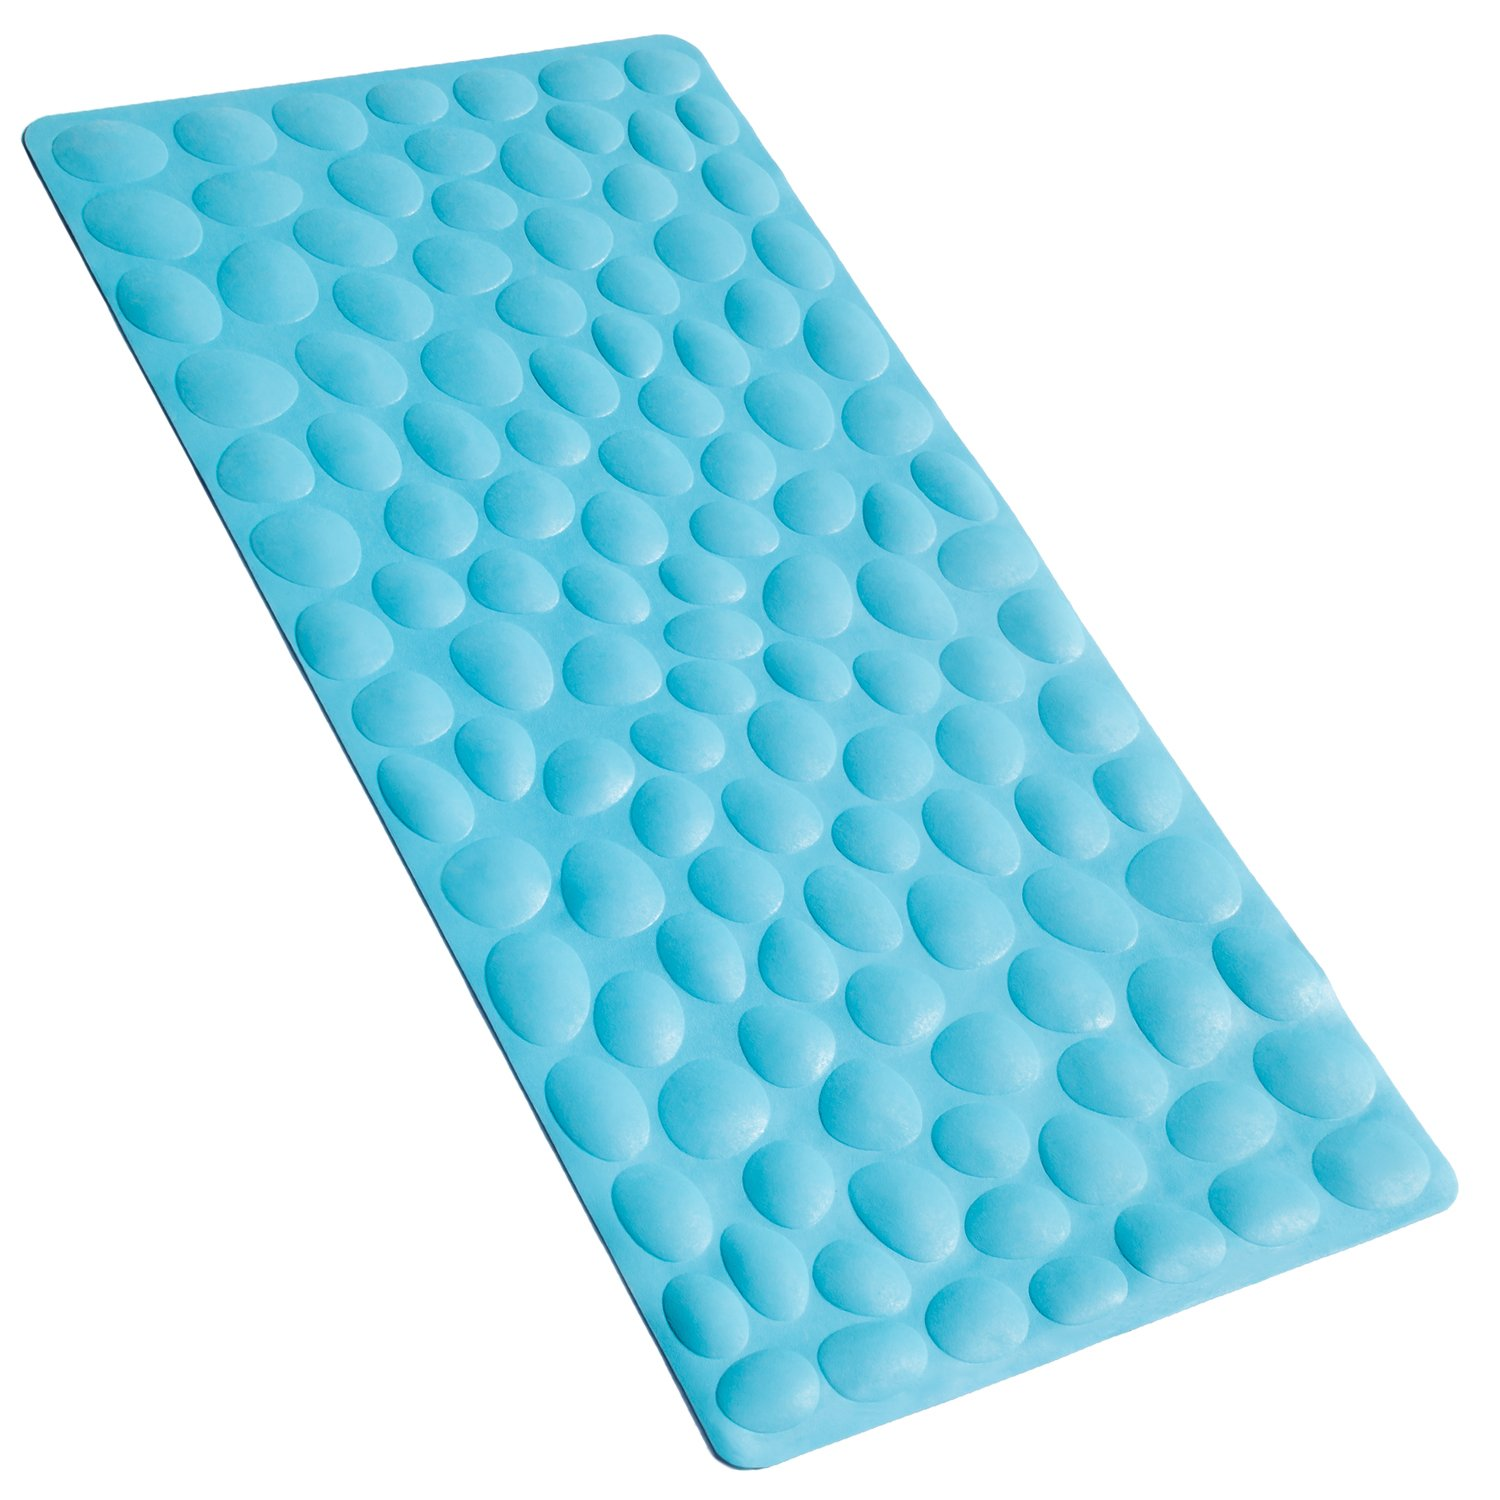 Amazon.com: OTHWAY Non Slip Bathtub Mat Soft Rubber Bathroom Bathmat With  Strong Suction Cups (Blue): Home U0026 Kitchen